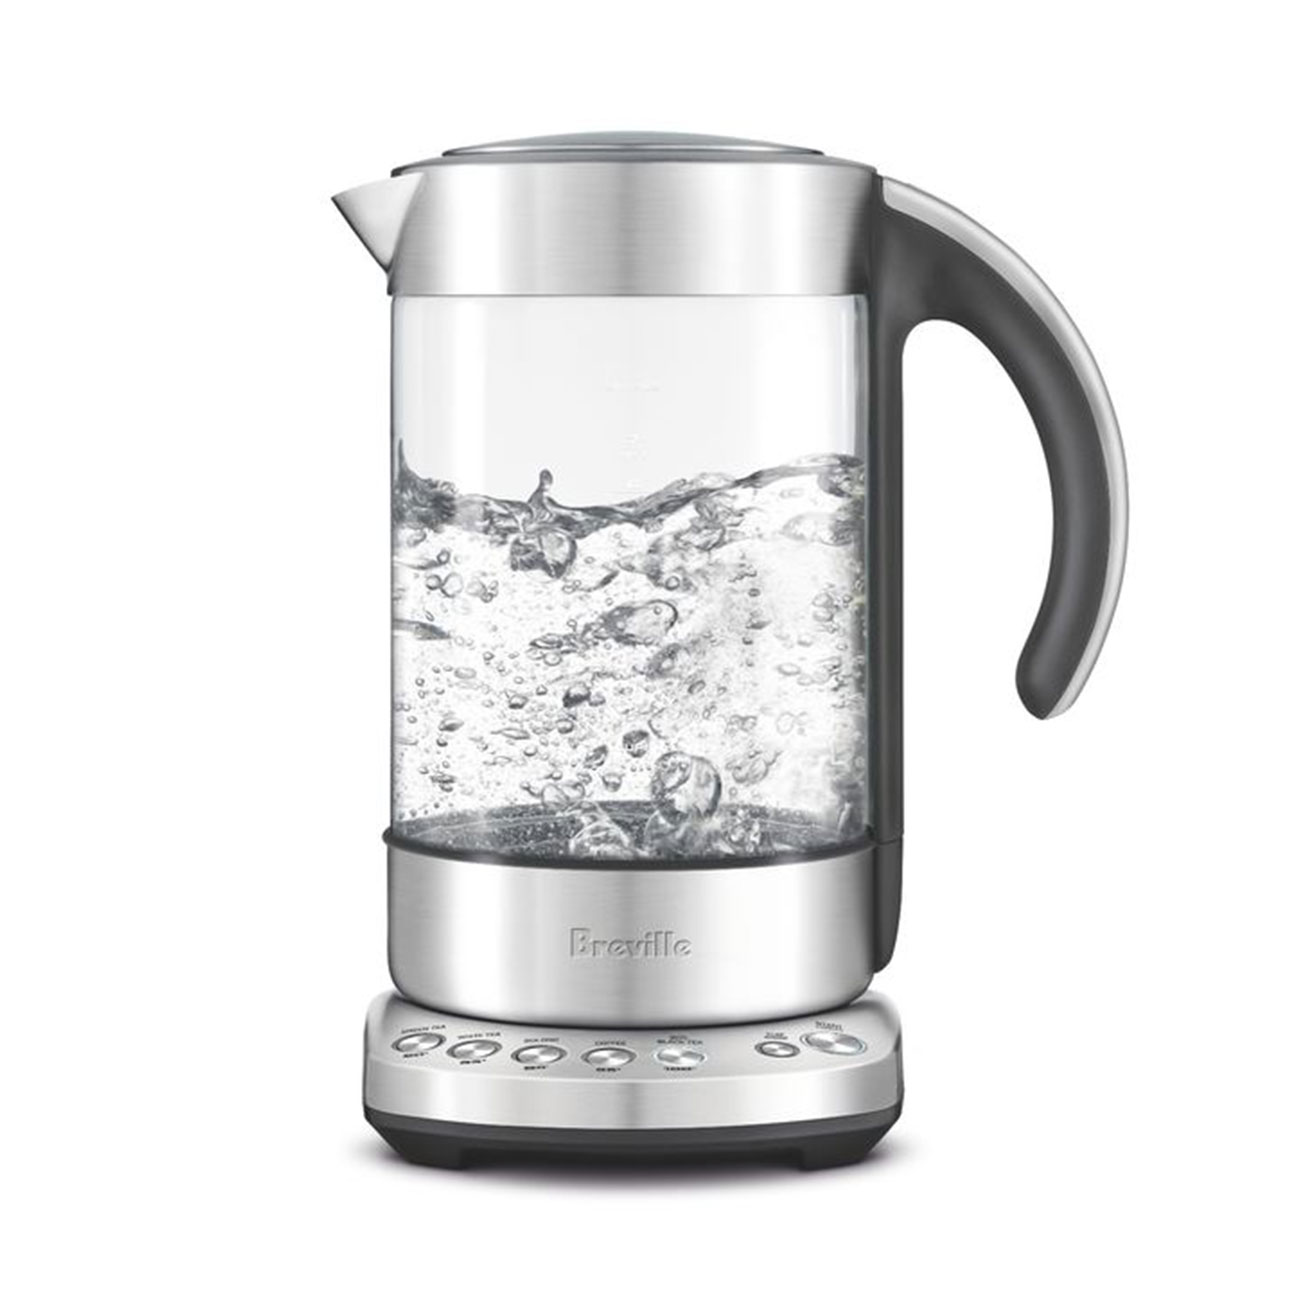 the Smart Kettle clear in brushed stainless steel boiling water